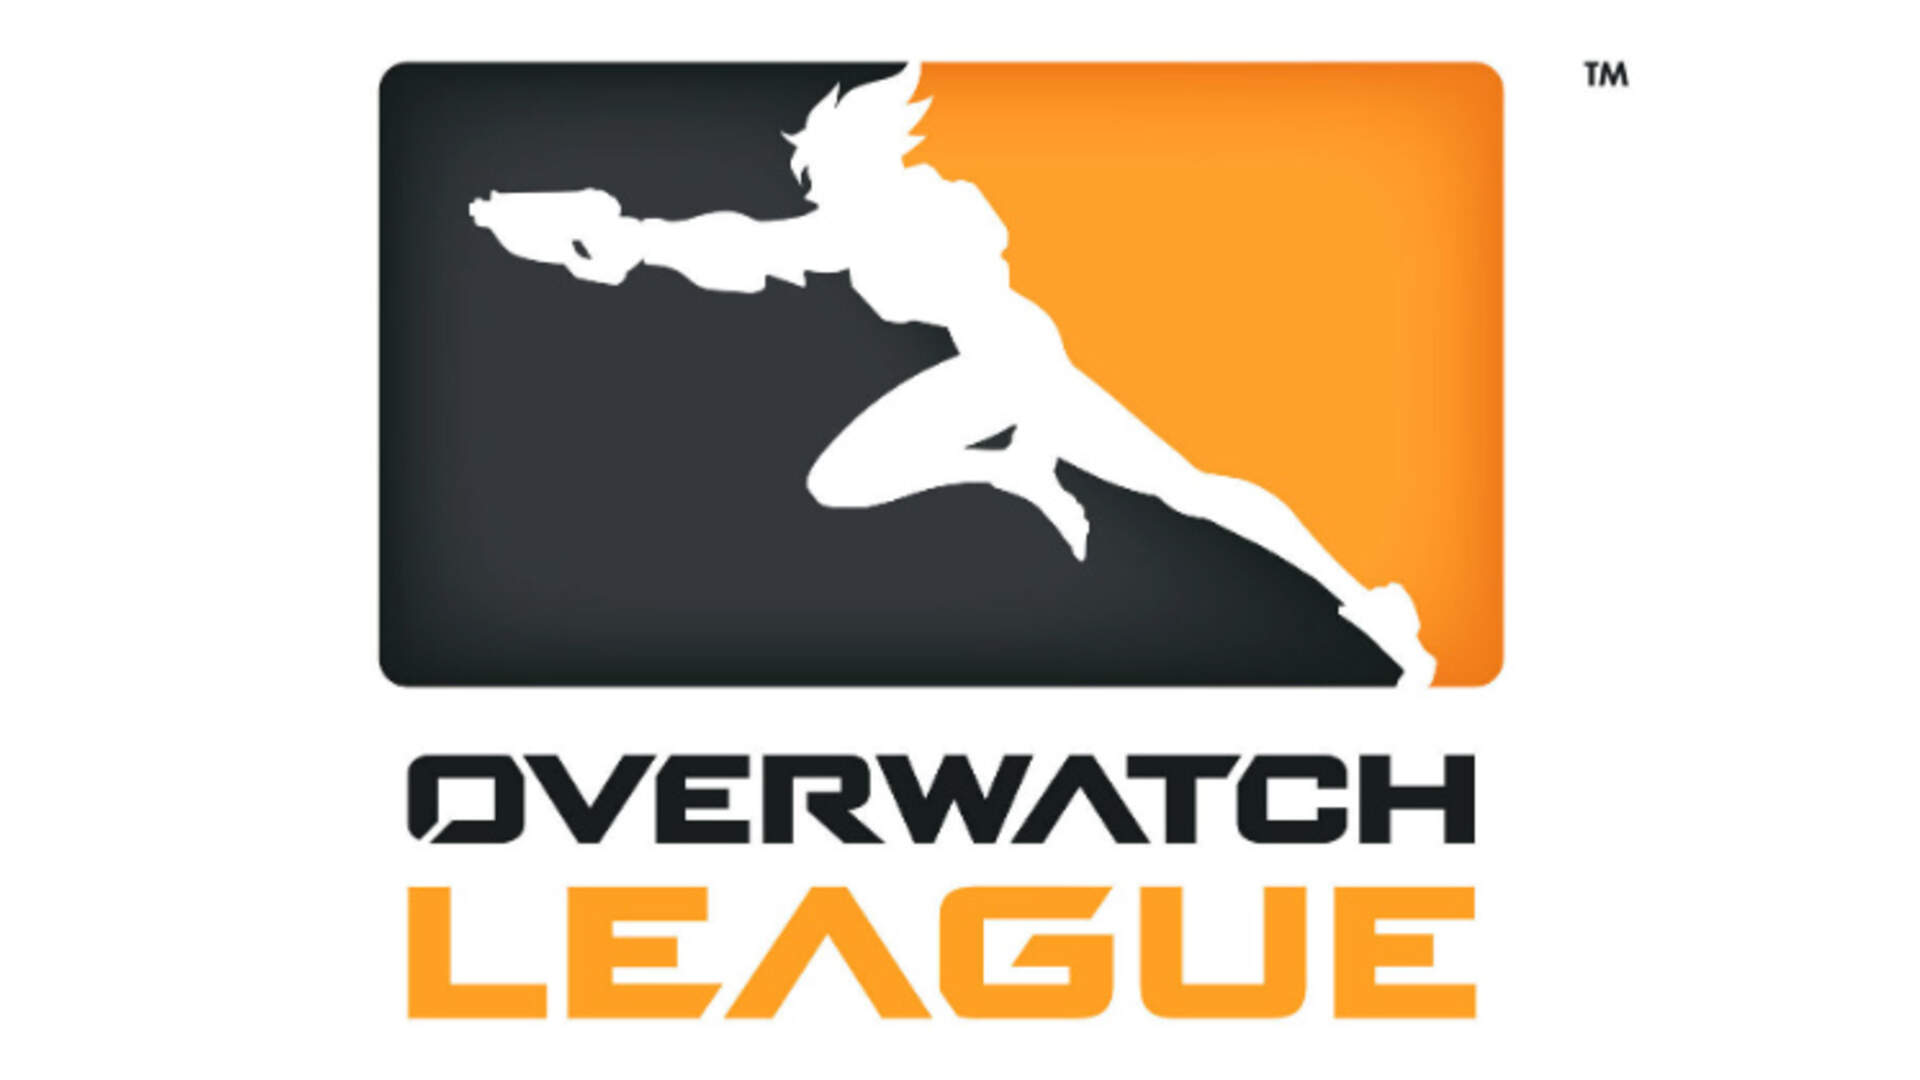 The Overwatch League Finds Its First Seven Teams and Owners, Including Patriots Owner Robert Kraft